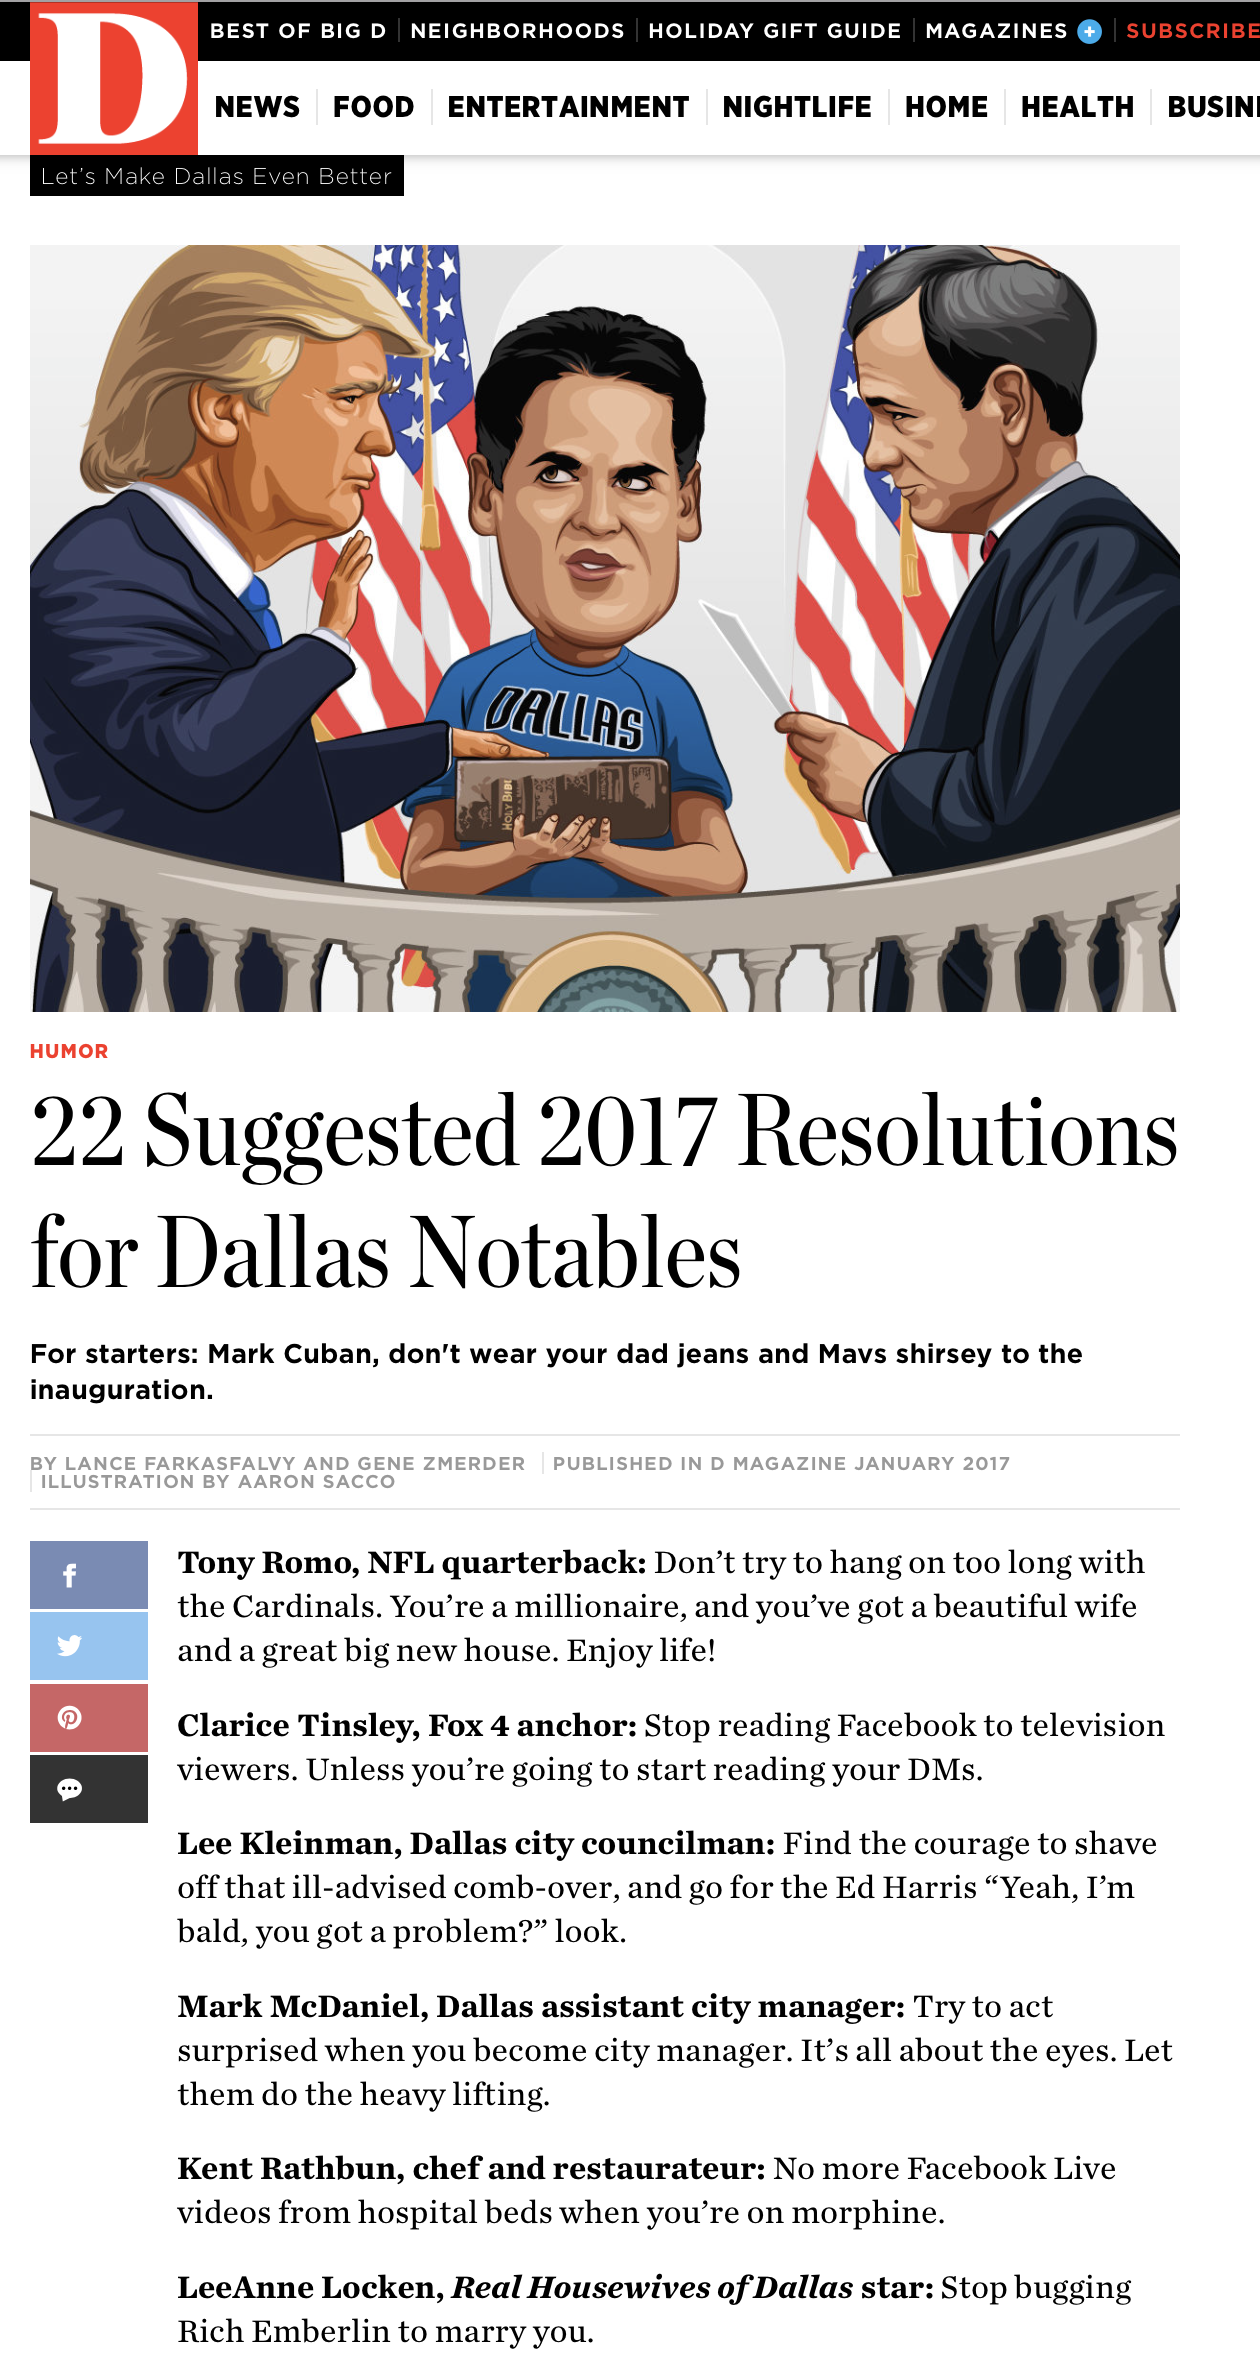 D Mag 2016 Resolutions